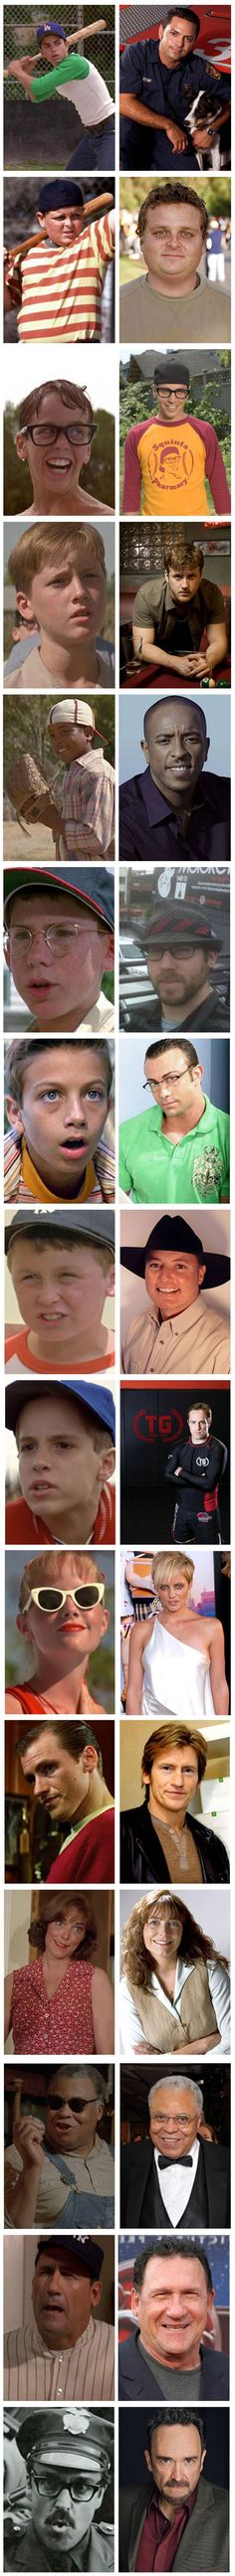 The Sandlot - Then (1993) and Now (2013) Got to love this movie!